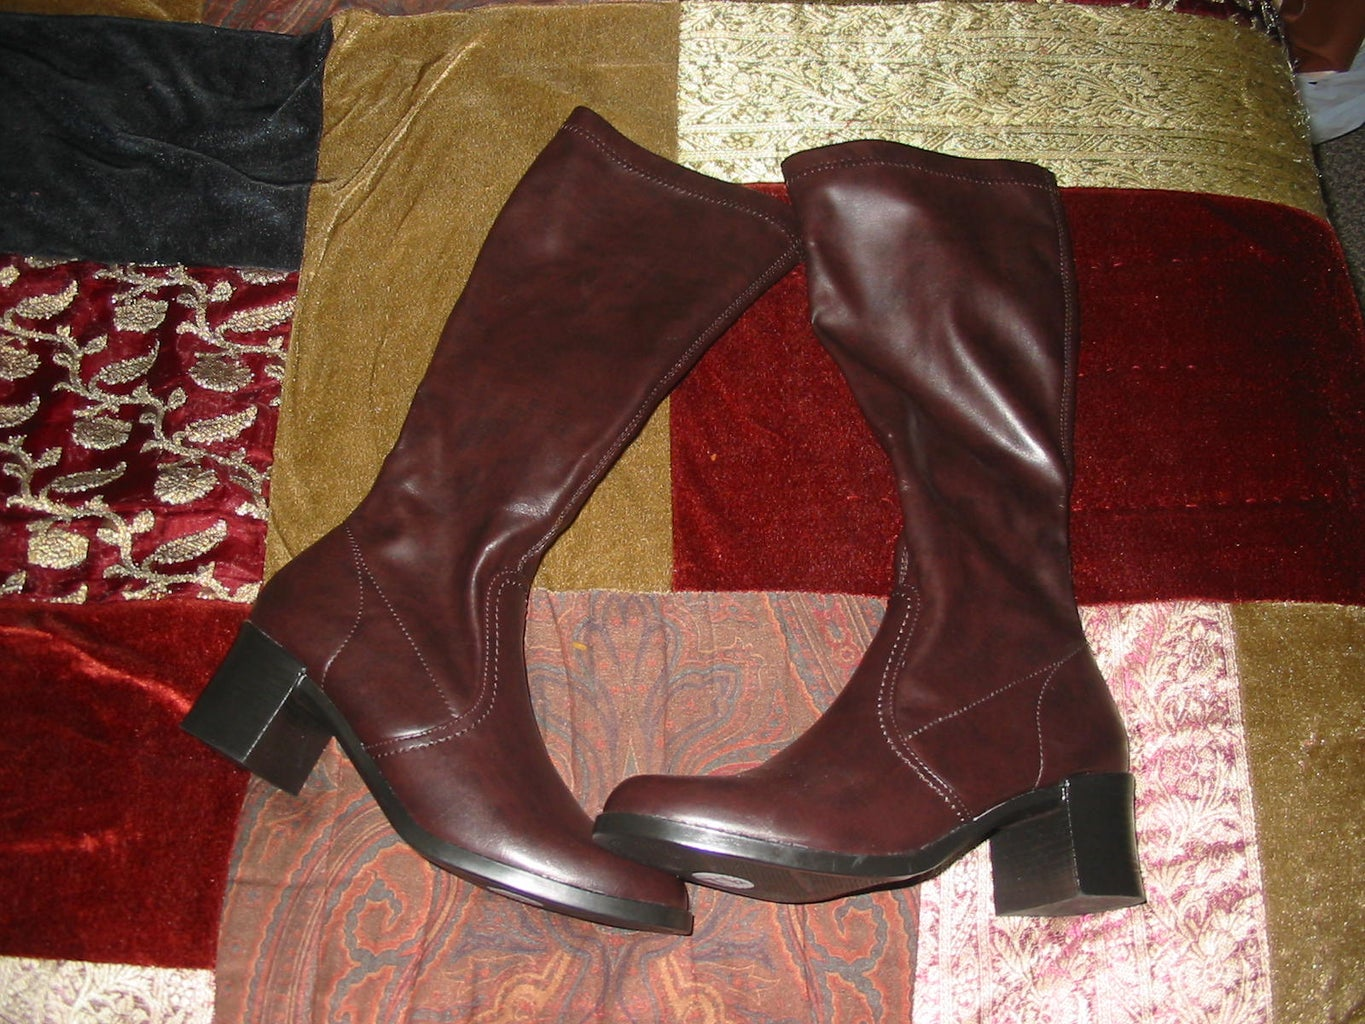 Boots and Gauntlets